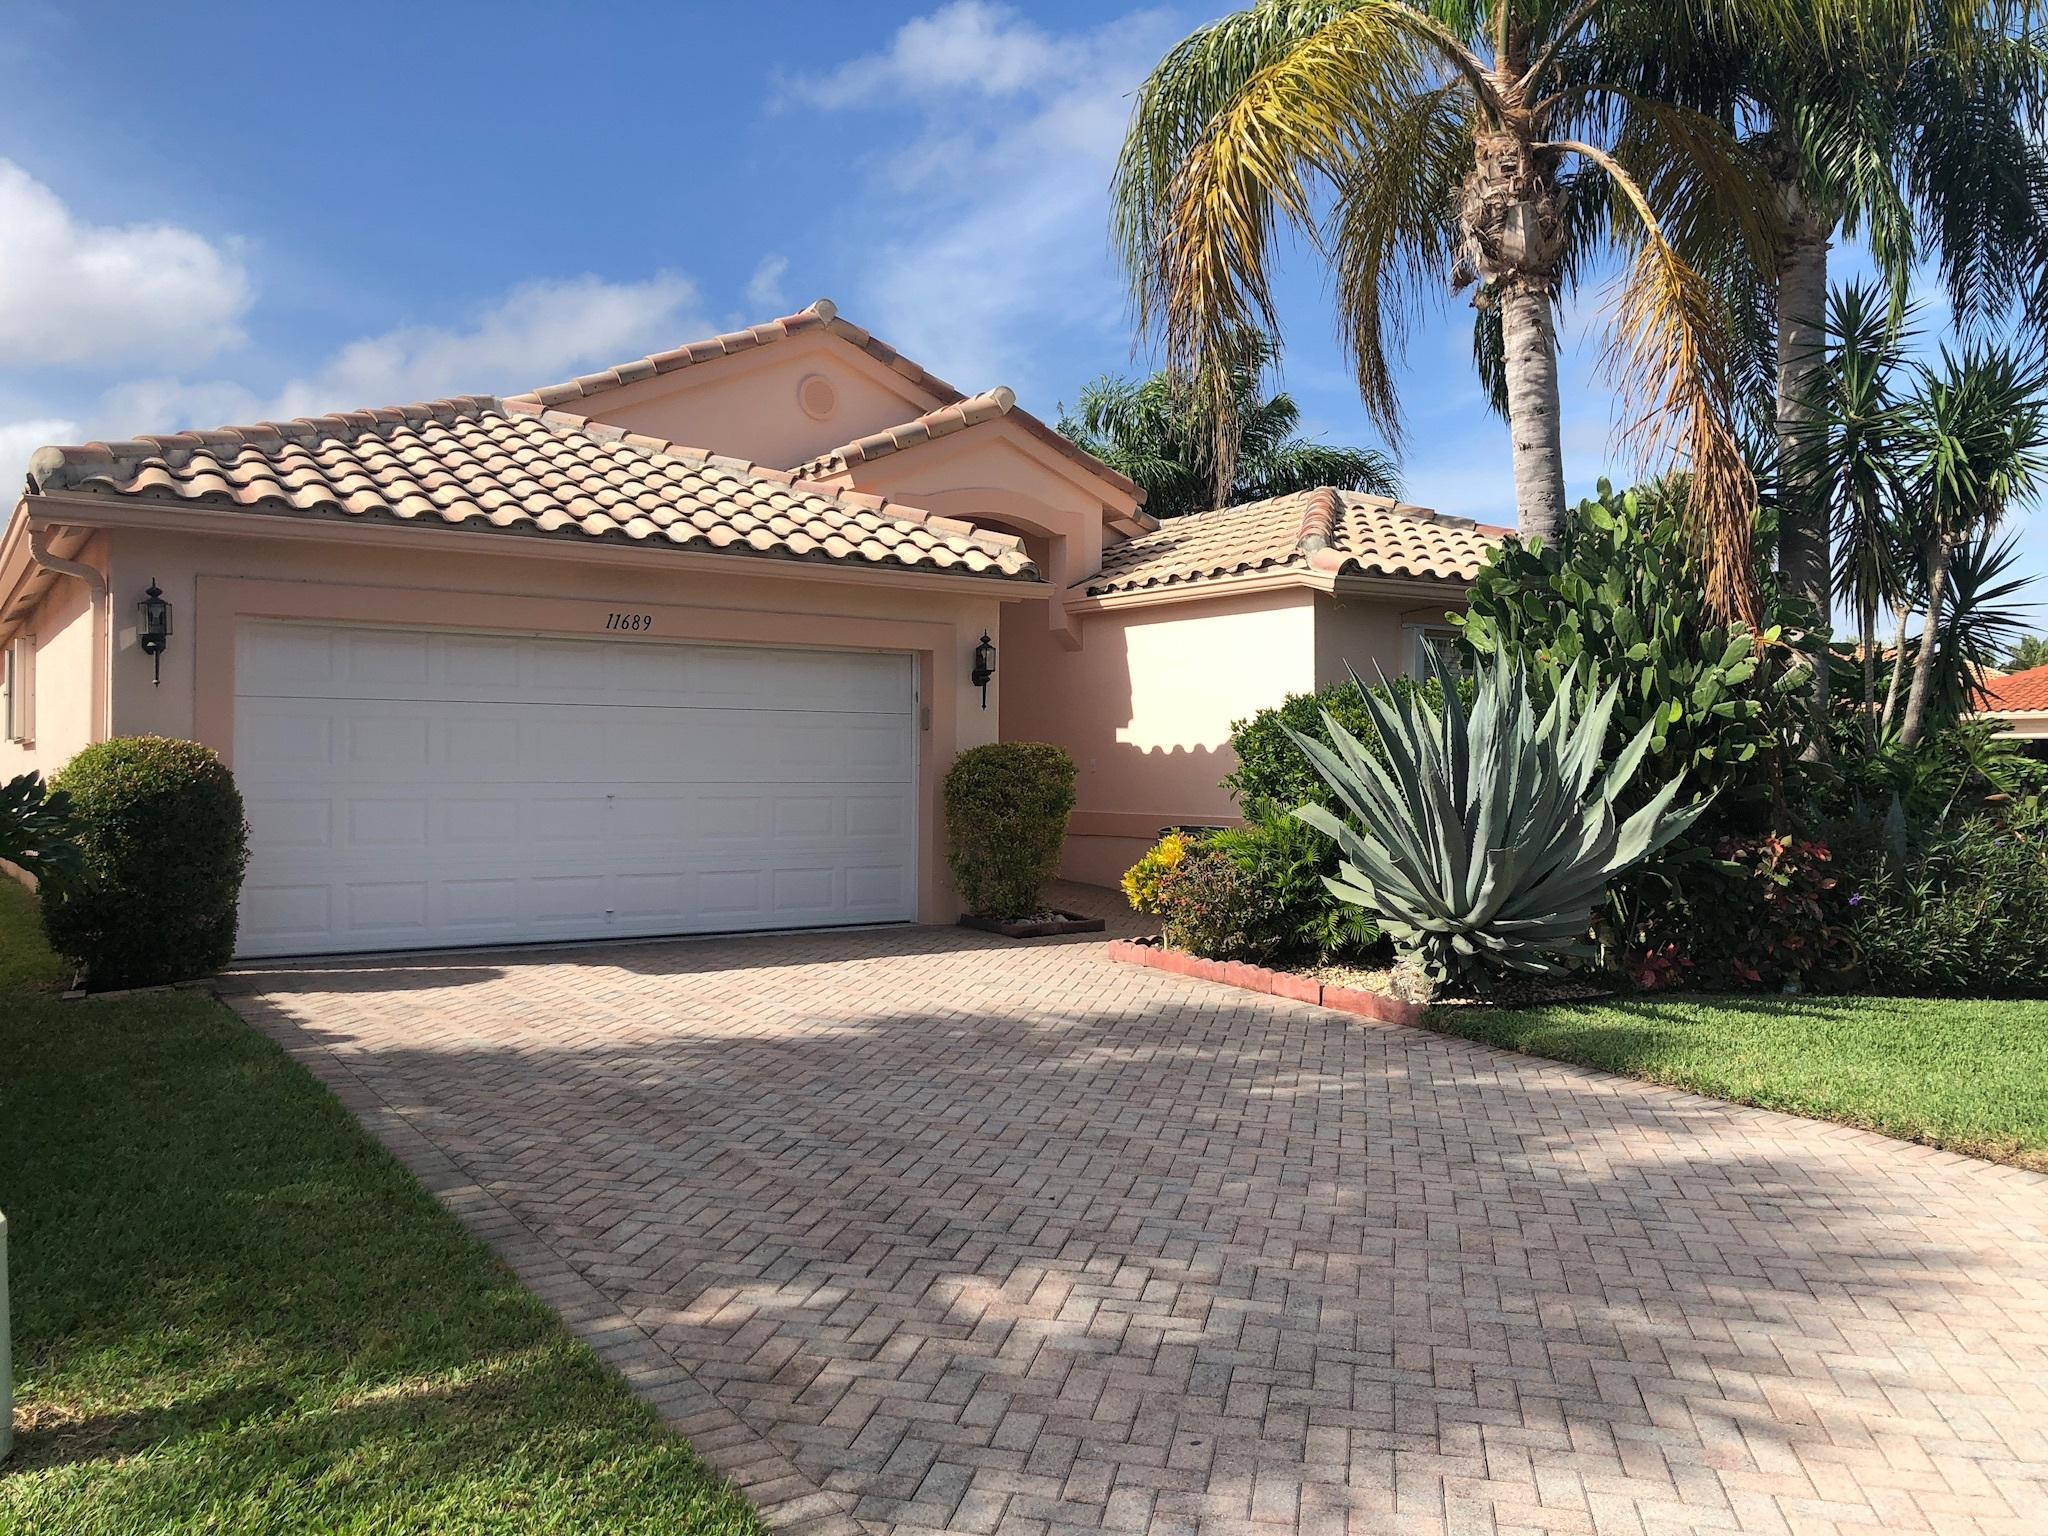 11689 Dove Hollow Avenue Boynton Beach, FL 33437